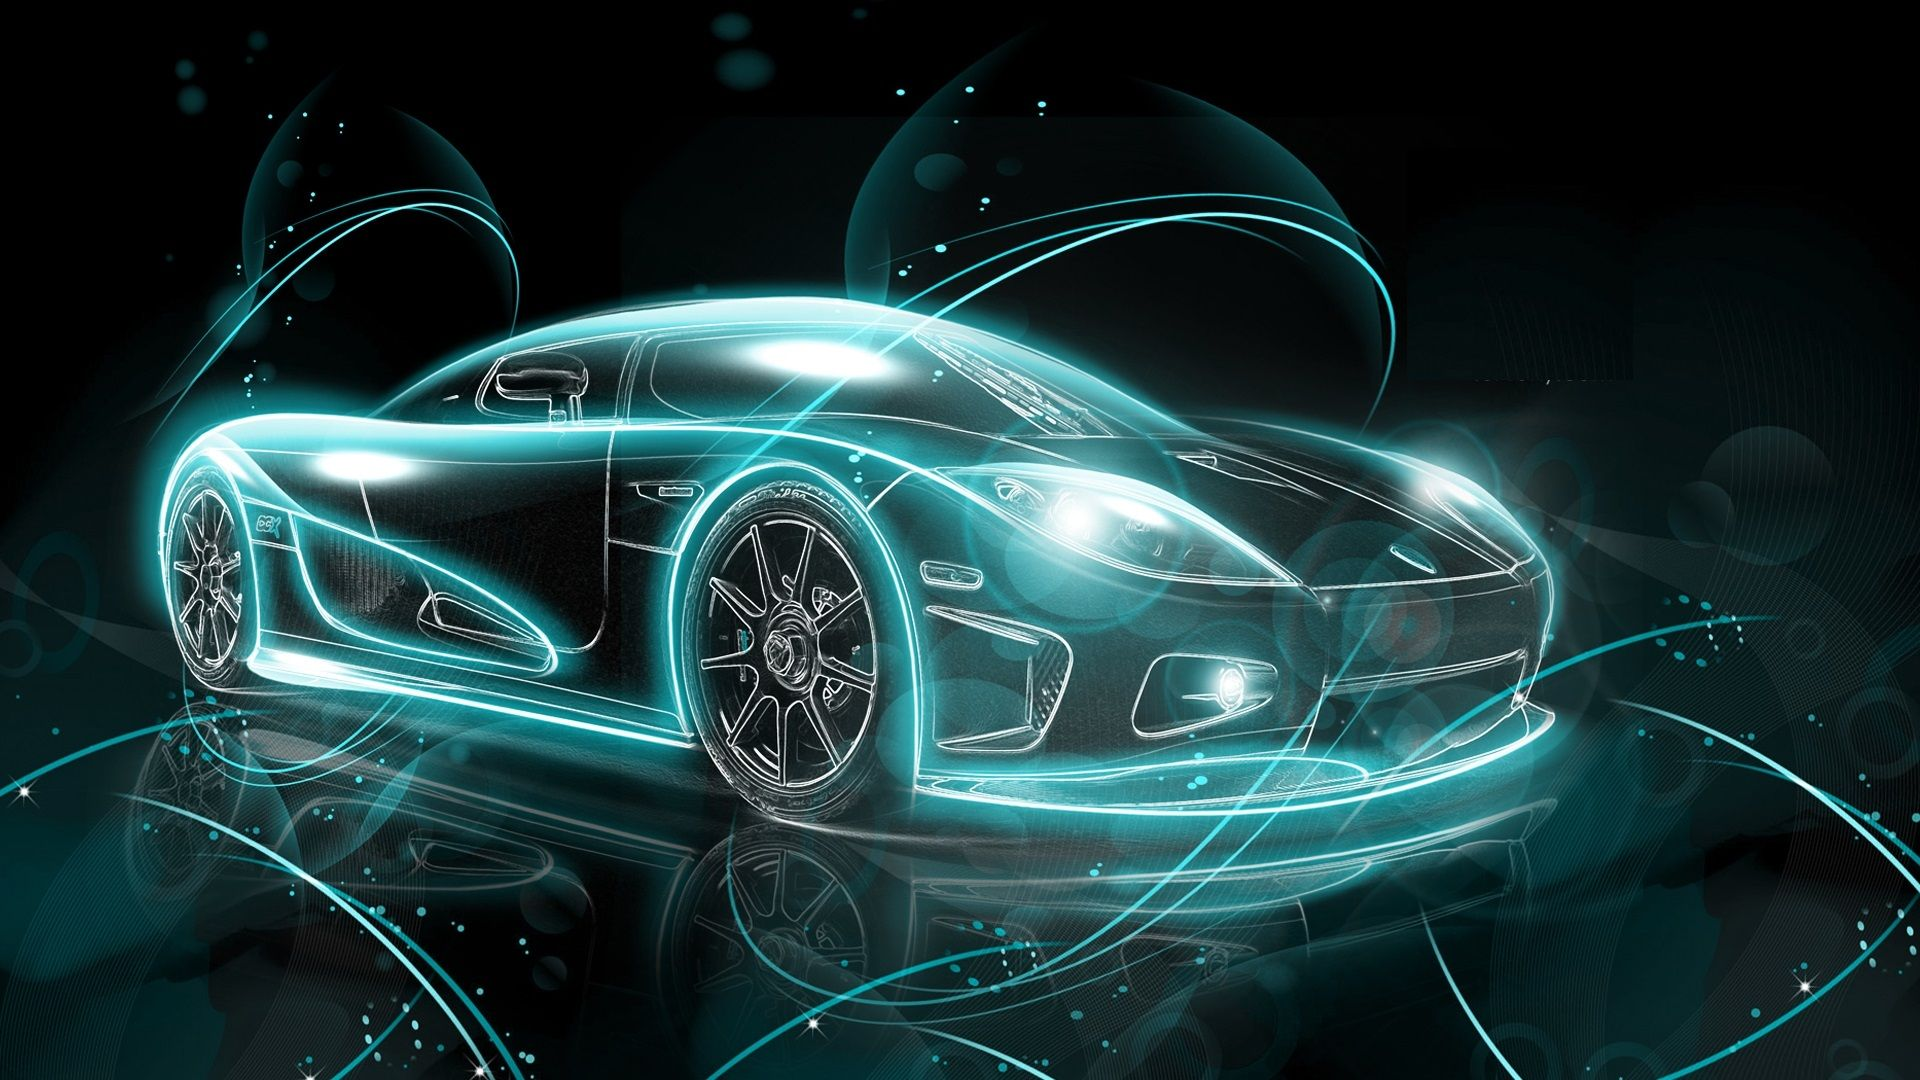 Abstract Sports Car Hd Wallpaper Car Wallpapers In 2019